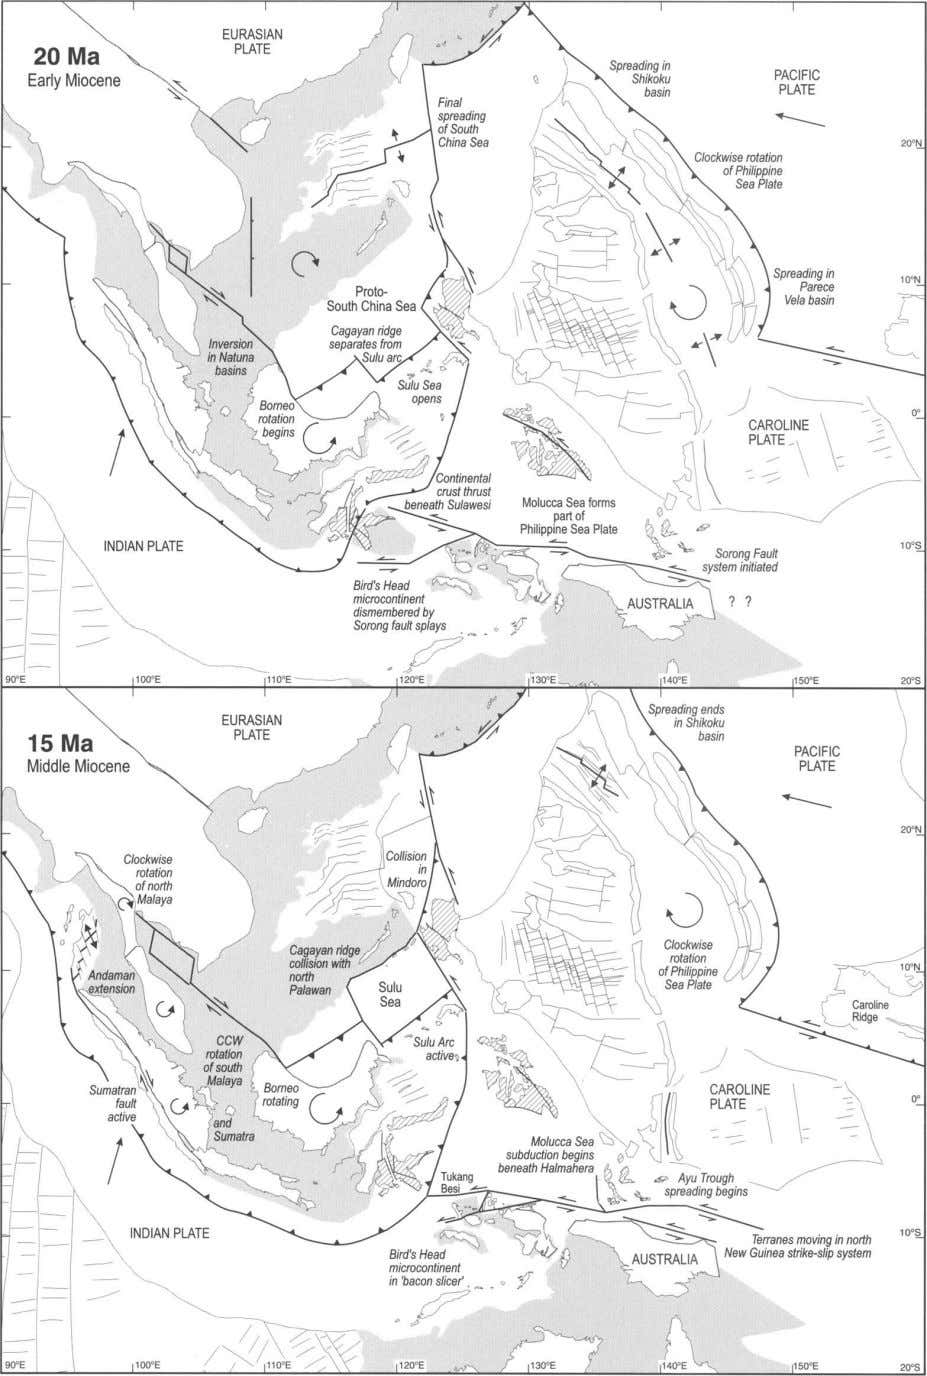 Fig. 5. Reconstructions of the region at 20 and 15 Ma. Borneo was rotating. Renewed